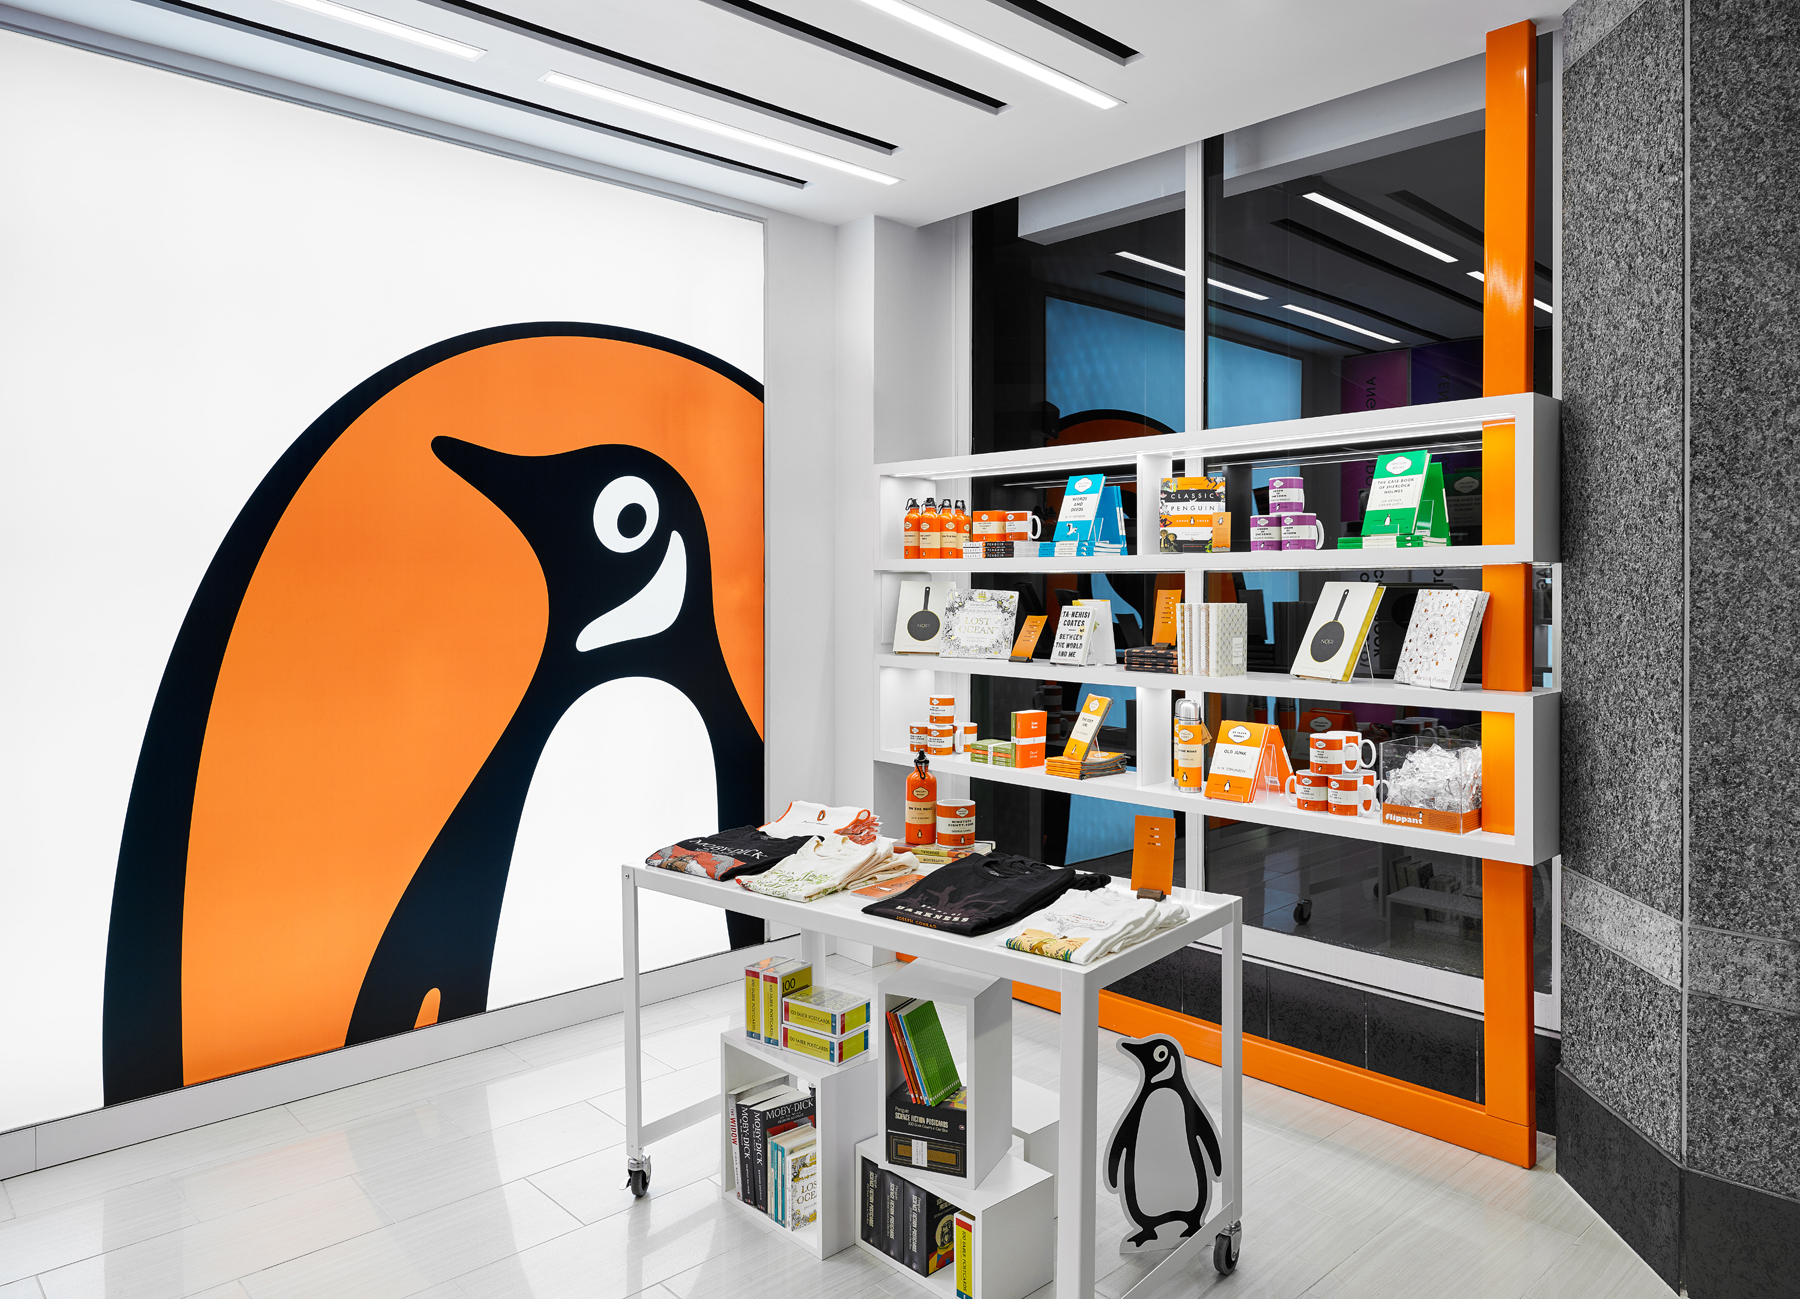 Penguin Shop logo wall next to shelving and tables displaying books and Penguin merchandise